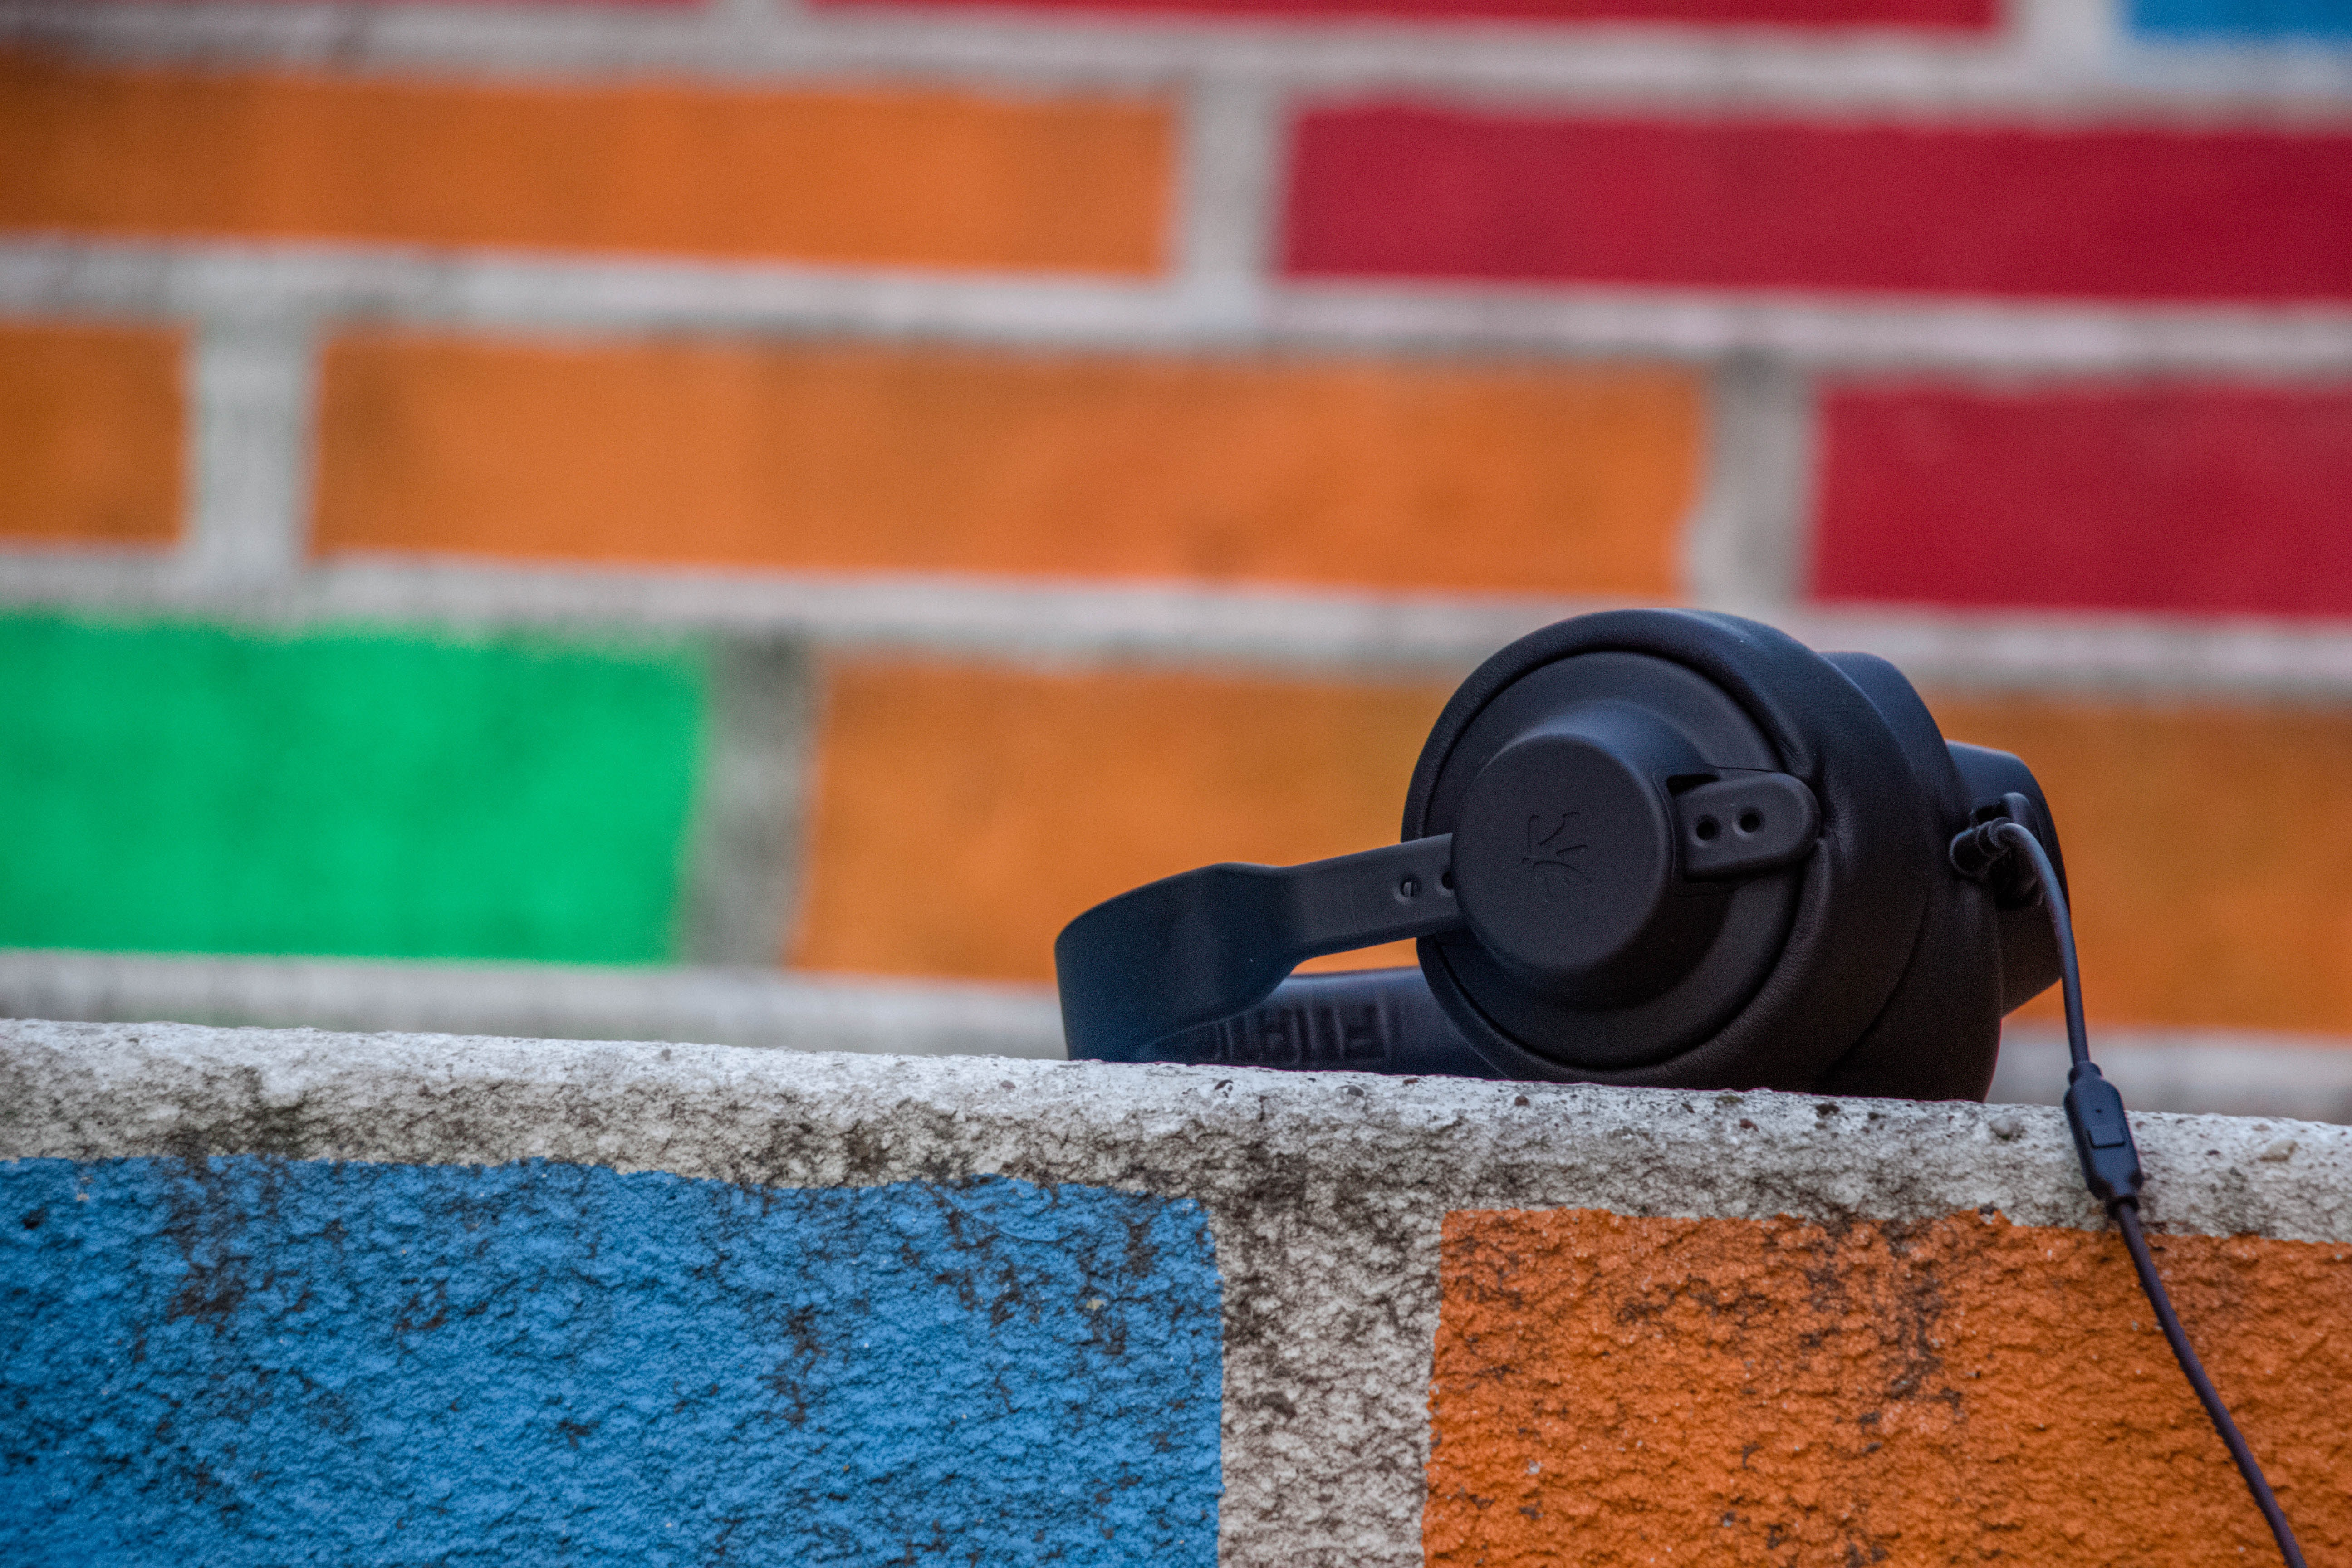 Black headphones on colorful wall with painted bricks